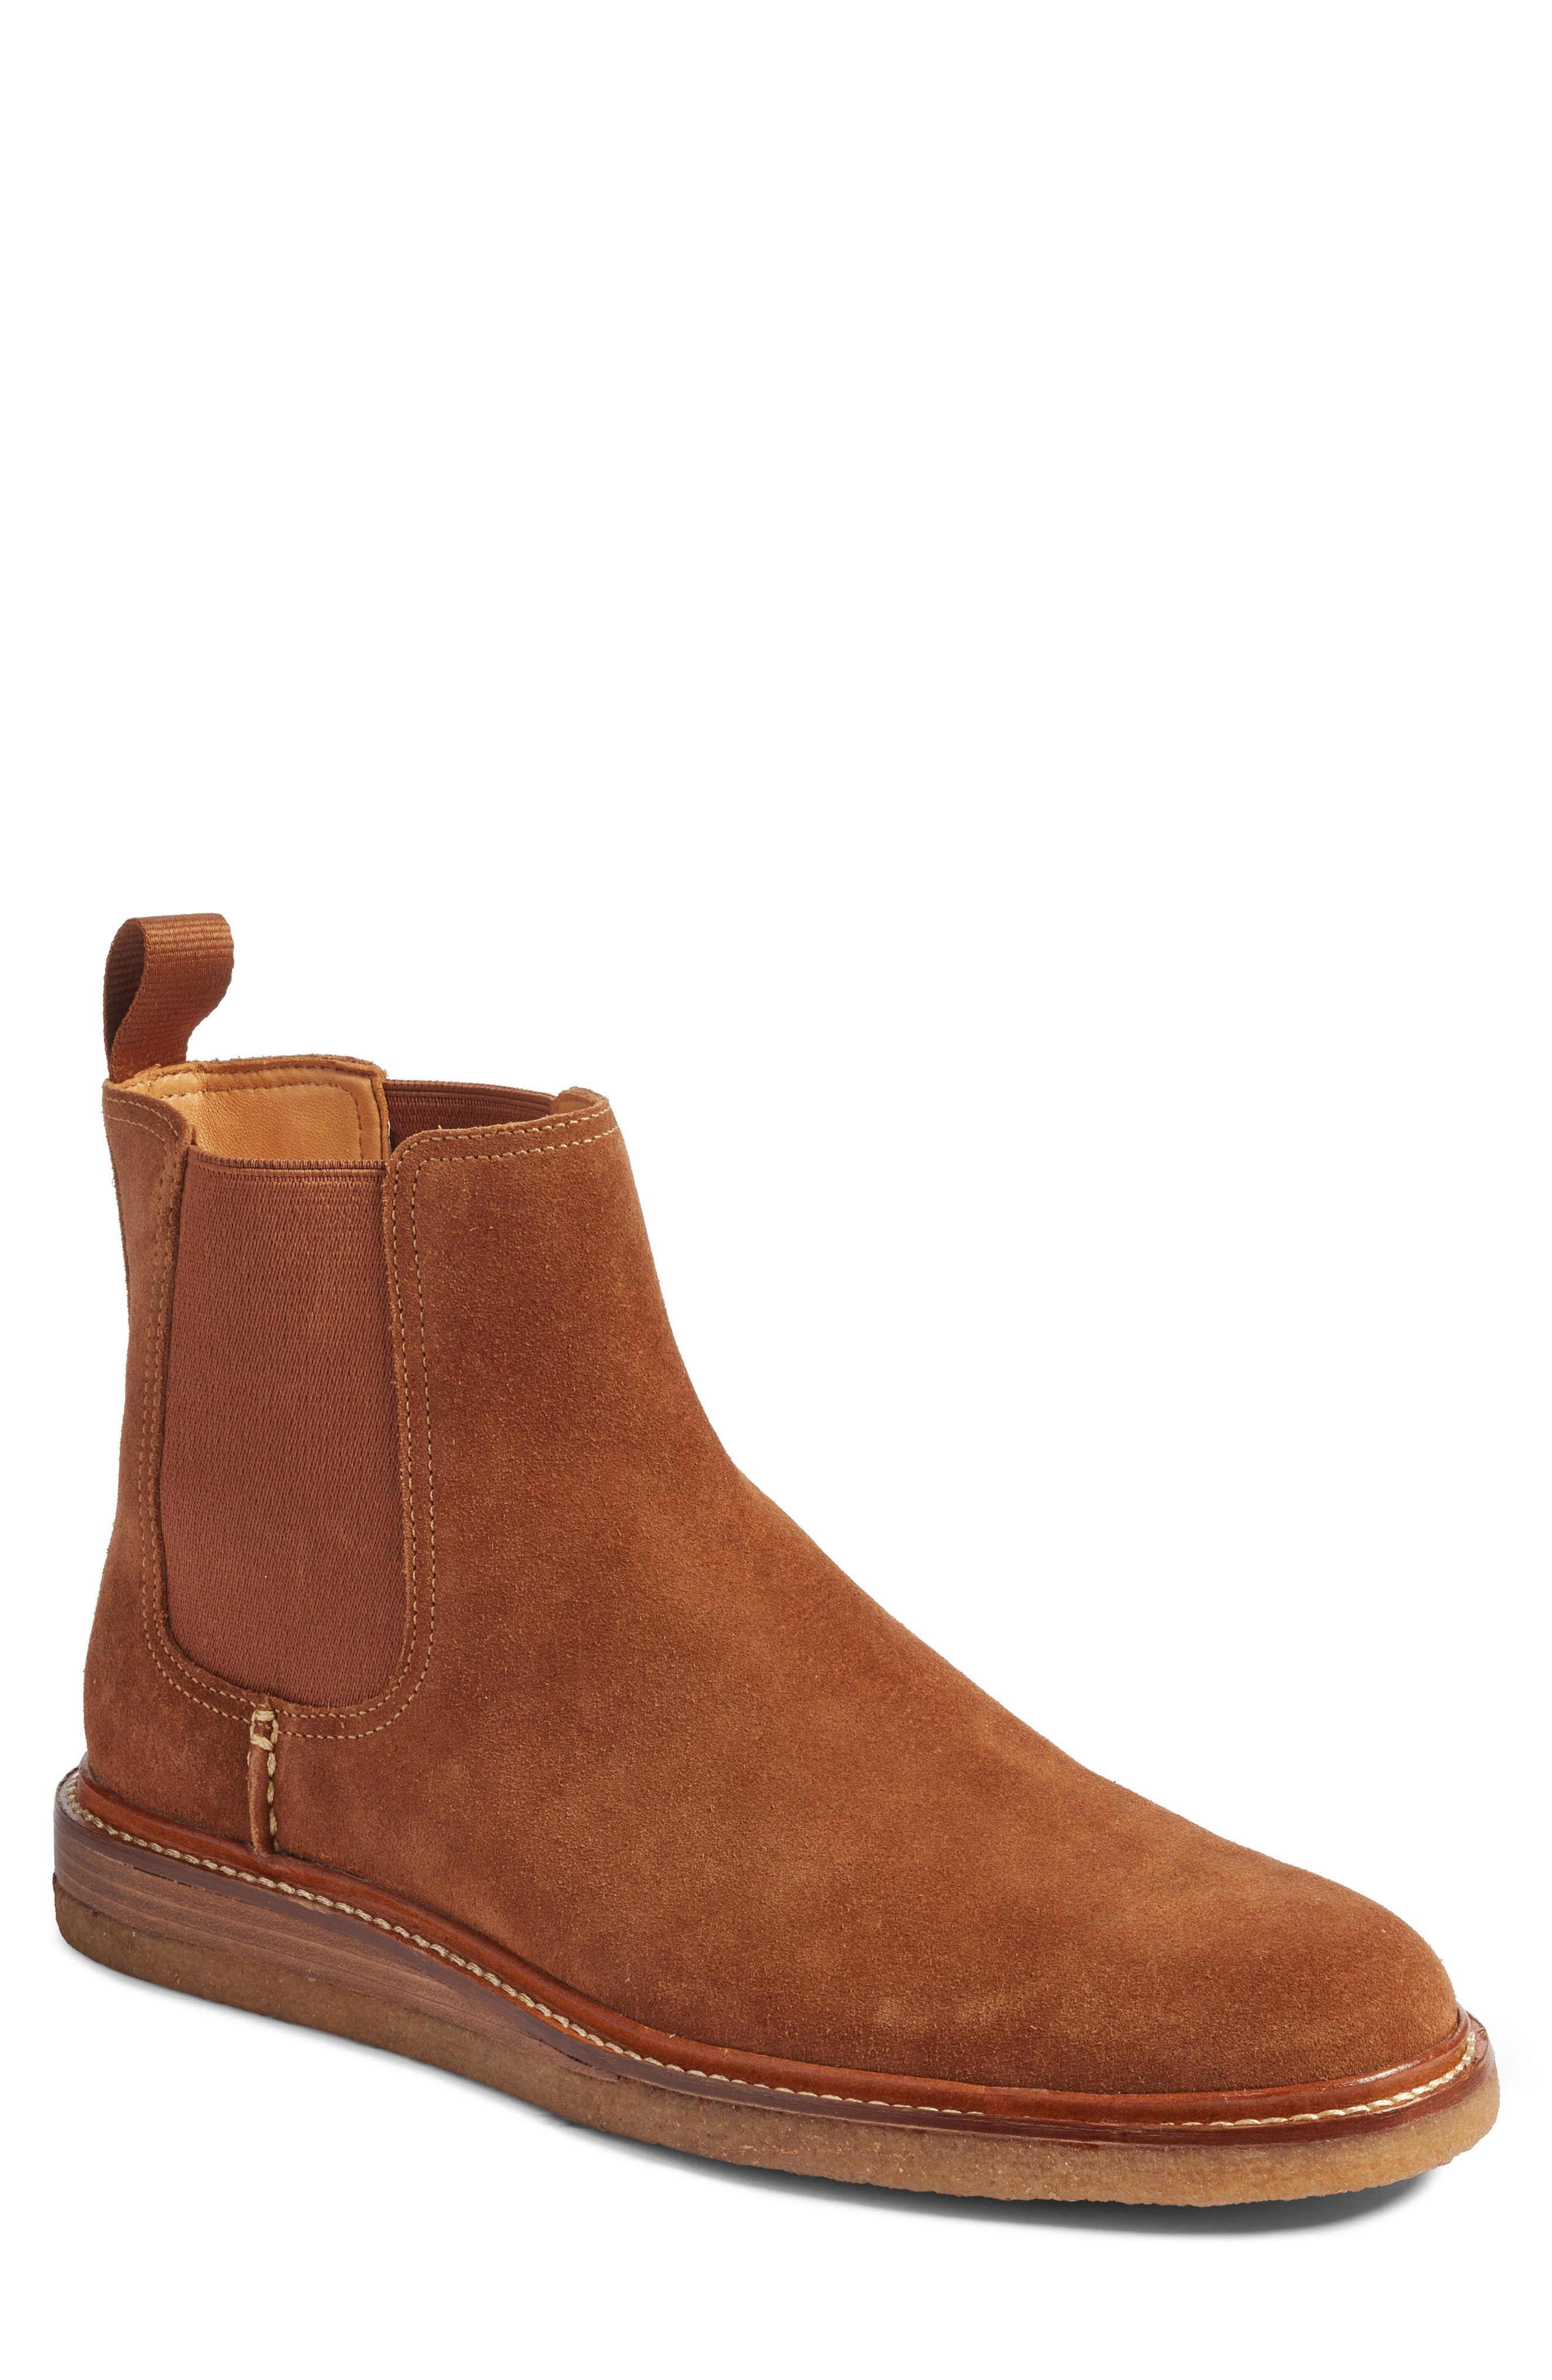 Alternate Image 1 Selected - Sperry Leather Chelsea Boot (Men)